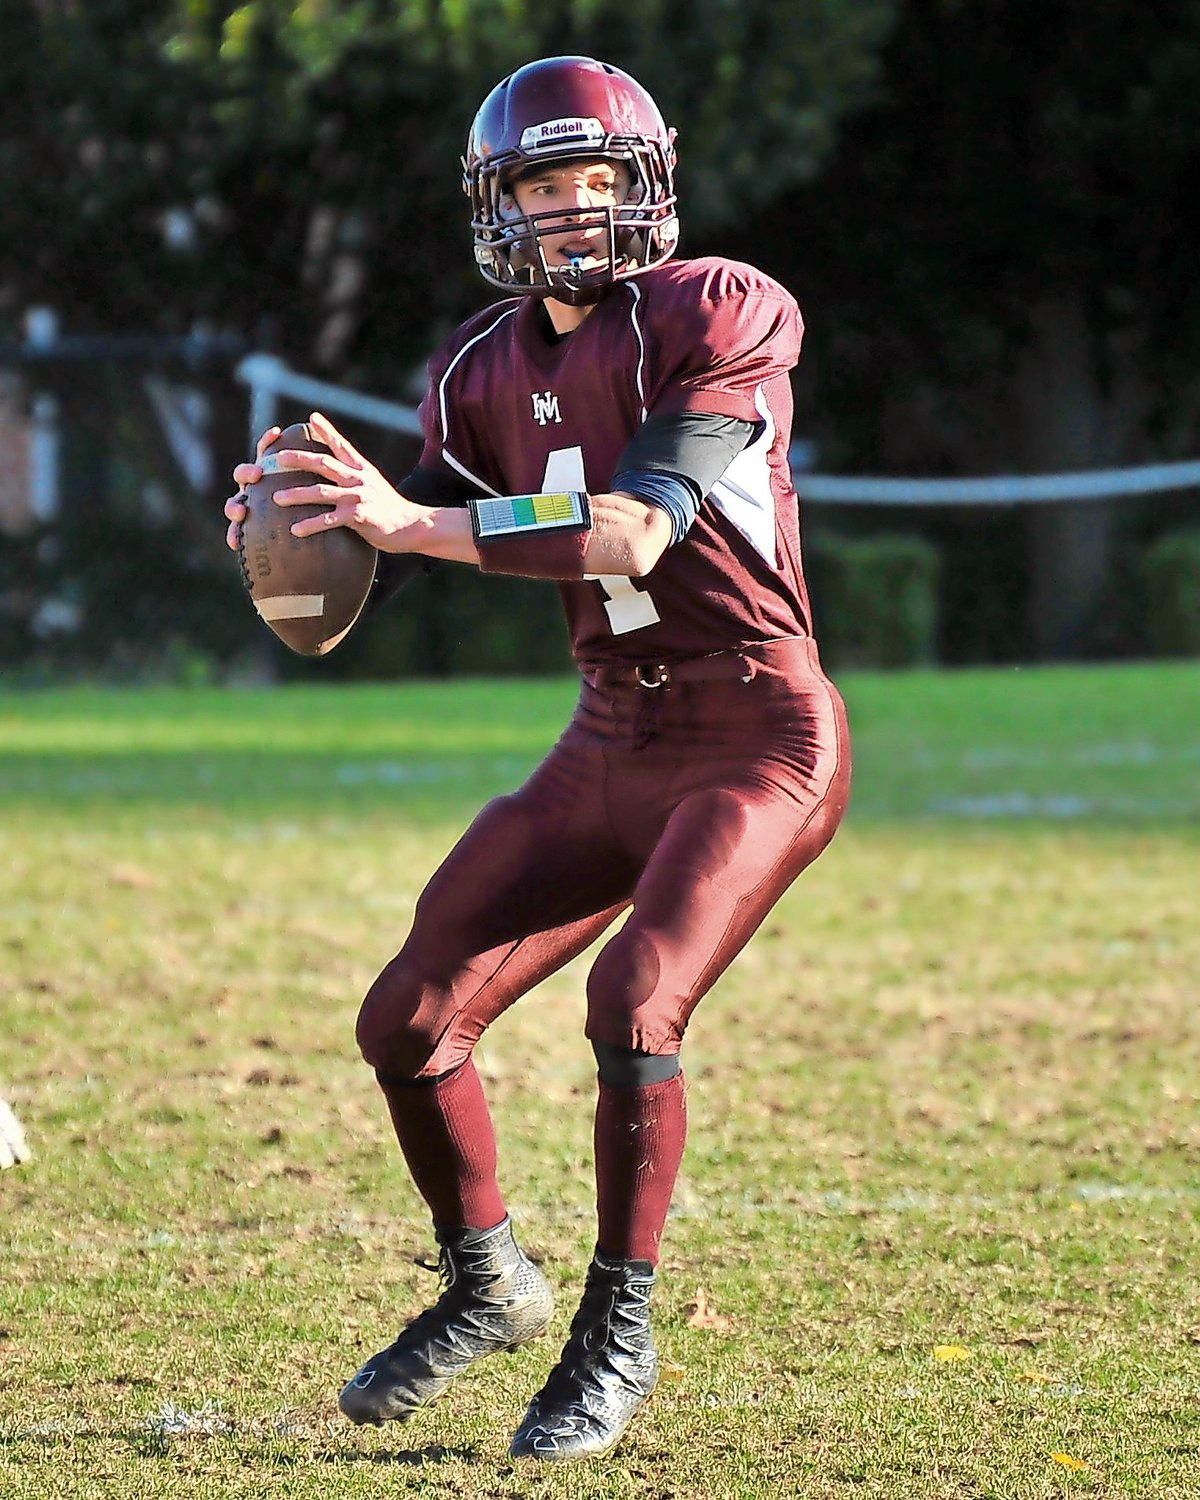 Horace Mann senior quarterback Brody McGuinn helped the Lions capture their third league title in four seasons with a TD pass in a 14-6 victory over Dalton.